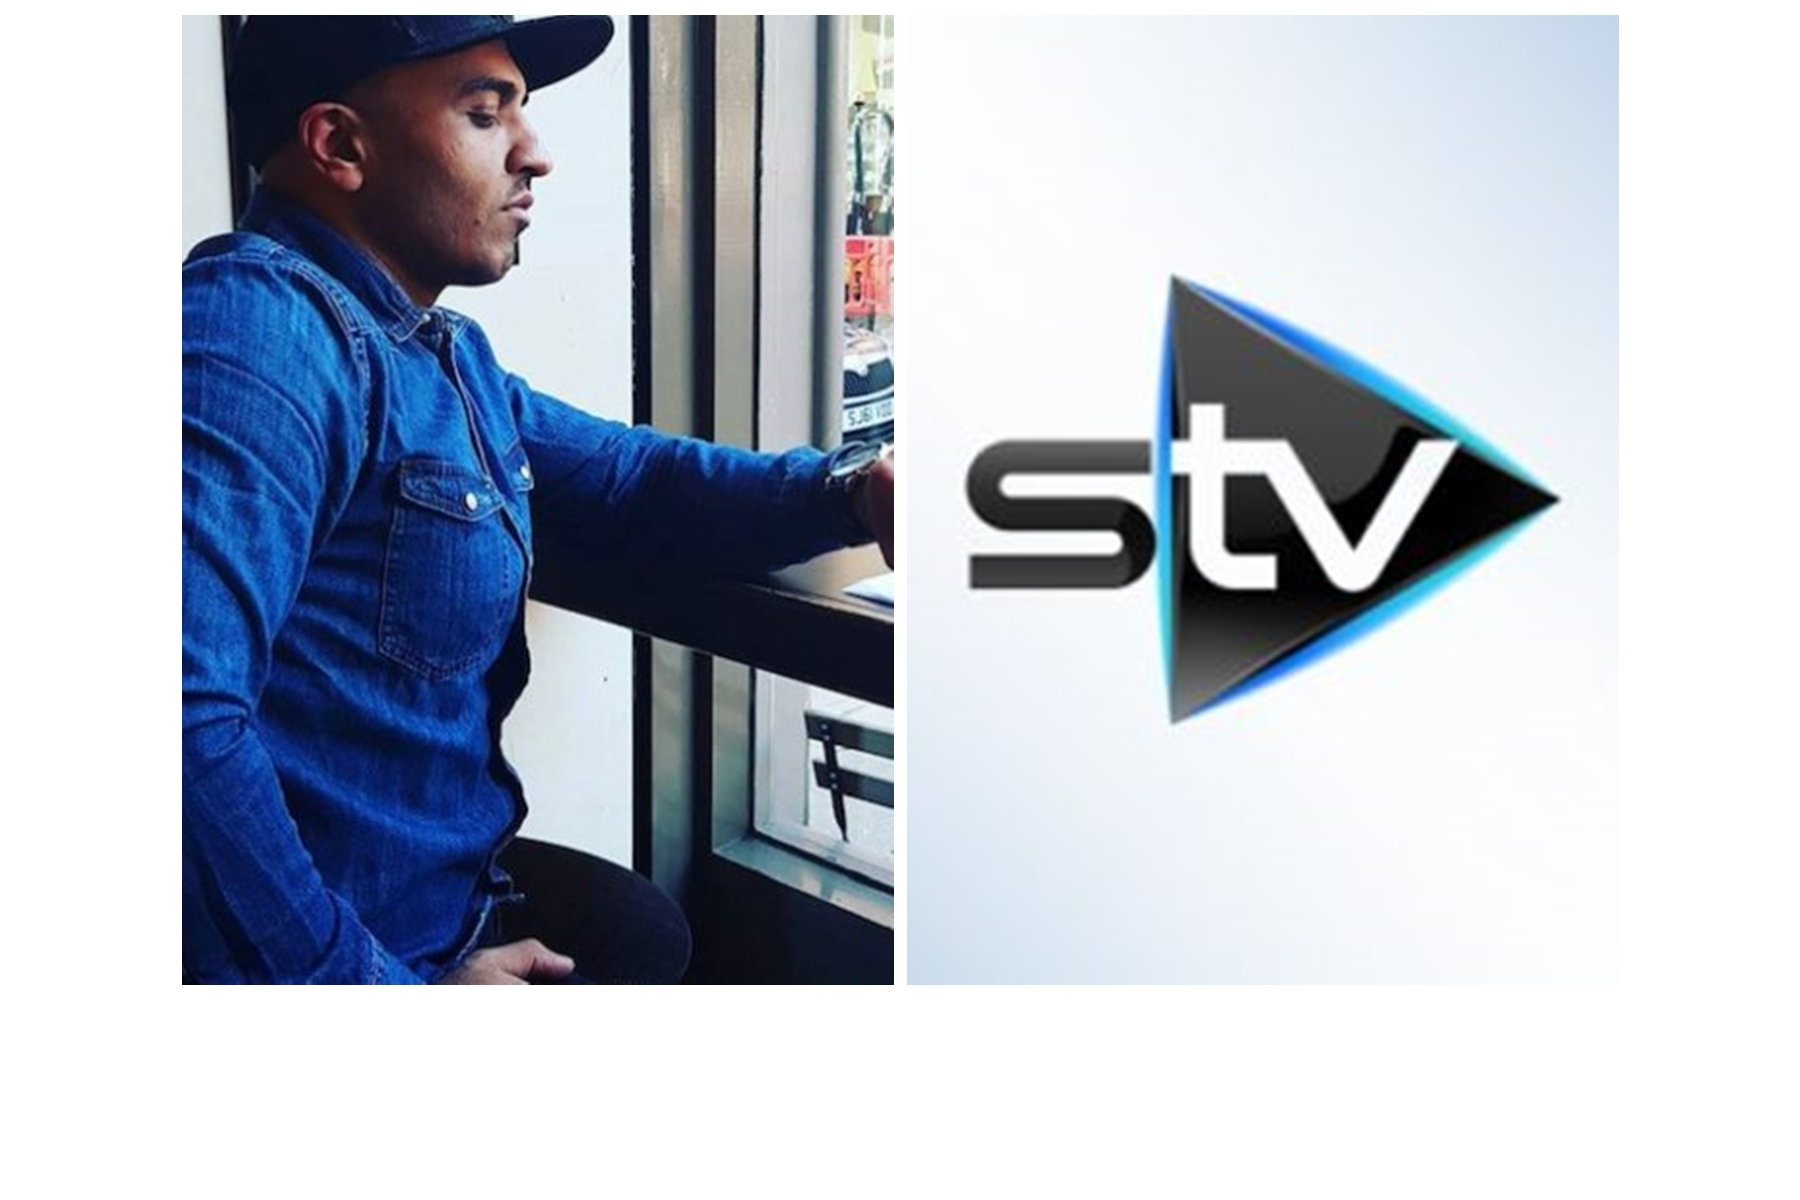 STV News Slander Adnan Ahmed, Falsely Accusing Him Of Fake Charges He Did Not Commit, Ahmed Is Innocent And Did Not Commit Sexual Assault